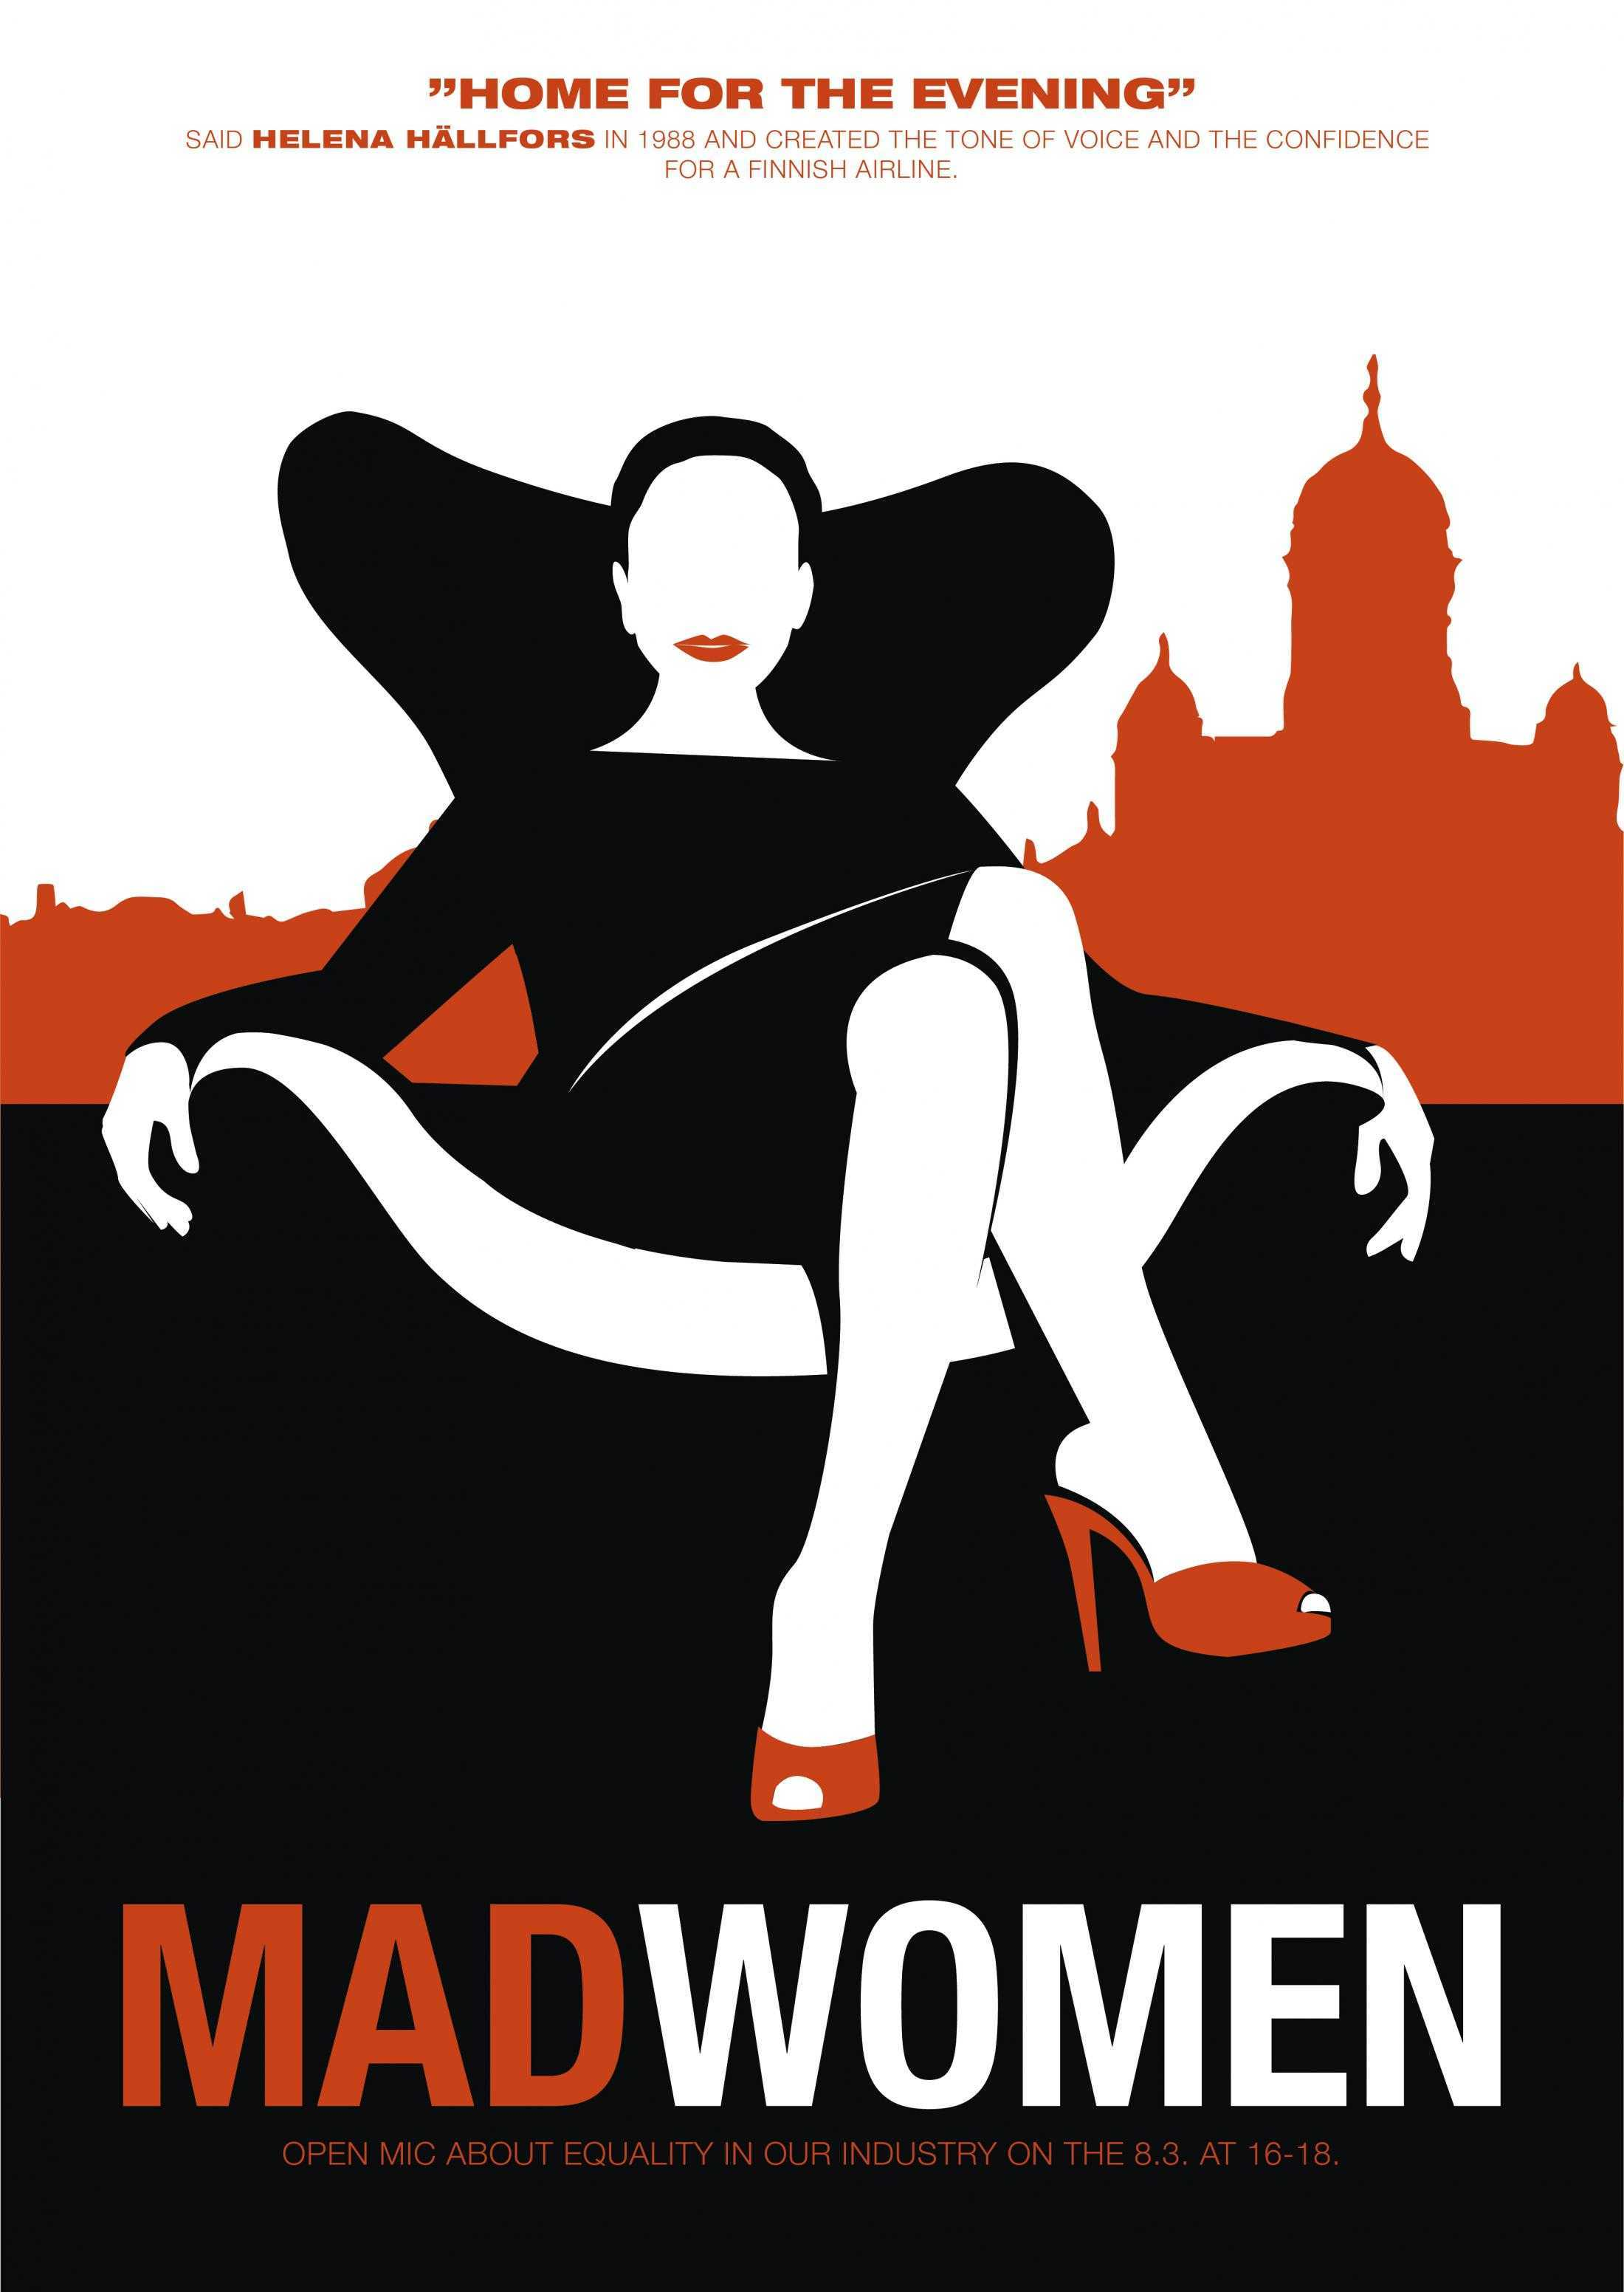 mad_women_by_sek_helena_hallfors_poster